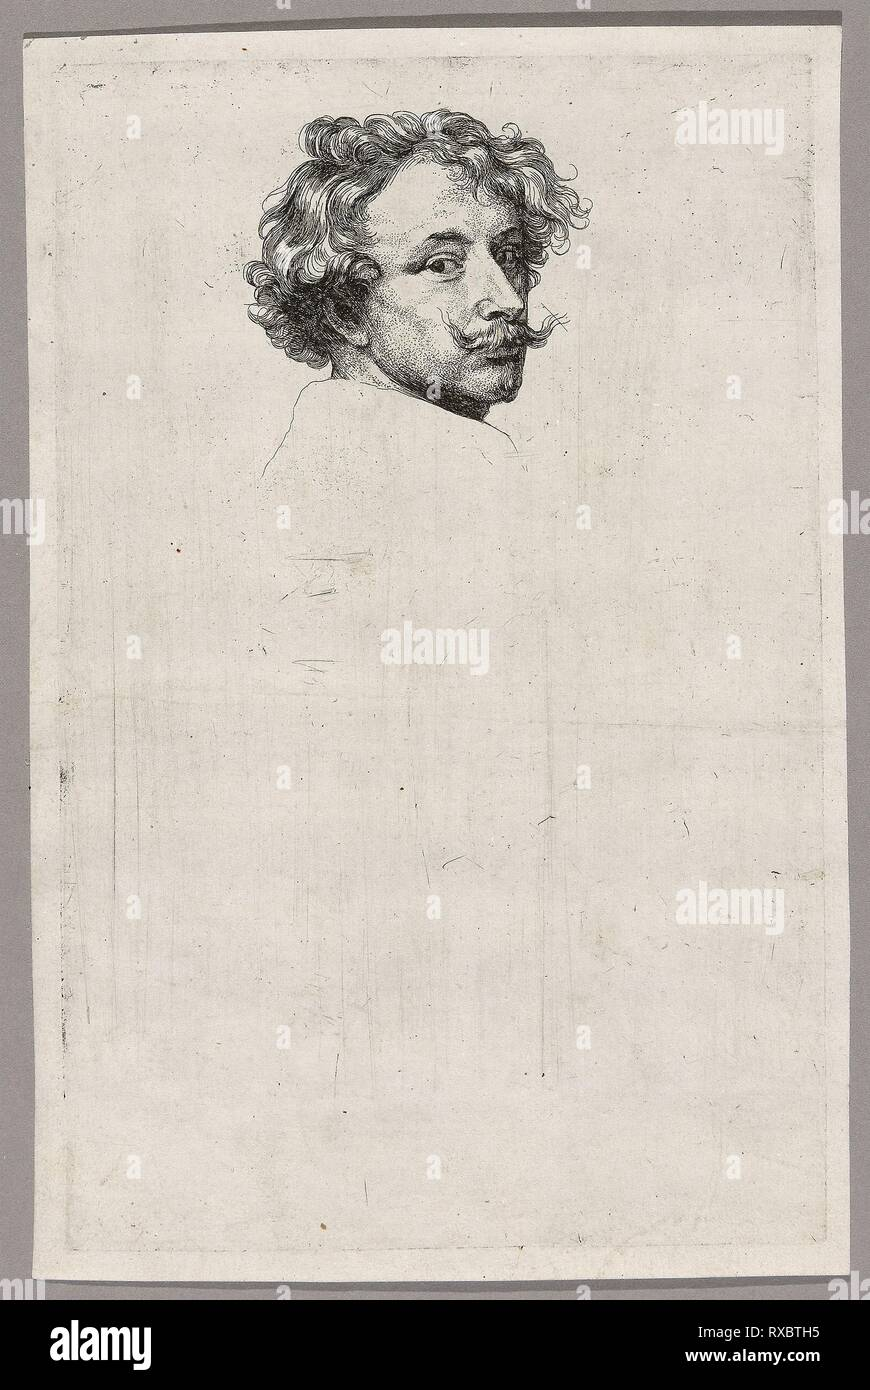 Self-Portrait. Anthony van Dyck; Flemish, 1599-1641. Date: 1630-1633. Dimensions: 246 × 157 mm (image/plate); 257 × 169 mm (sheet). Etching in black on ivory laid paper. Origin: Flanders. Museum: The Chicago Art Institute. - Stock Image